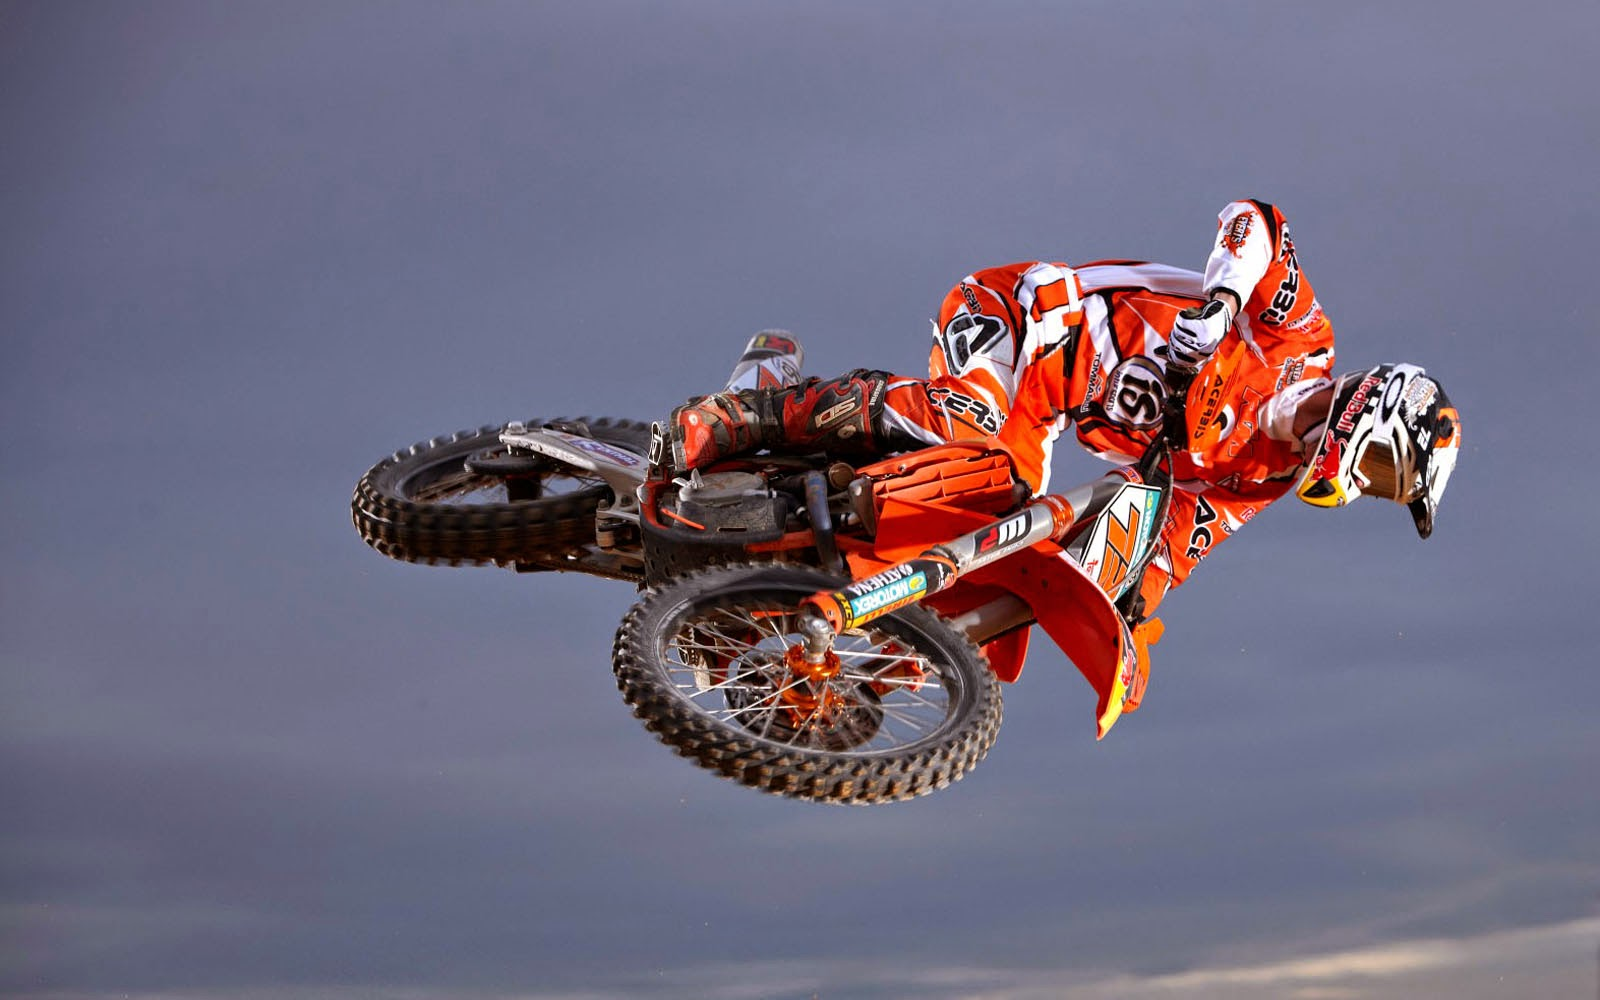 Wallpapers KTM 350 SX F Wallpapers